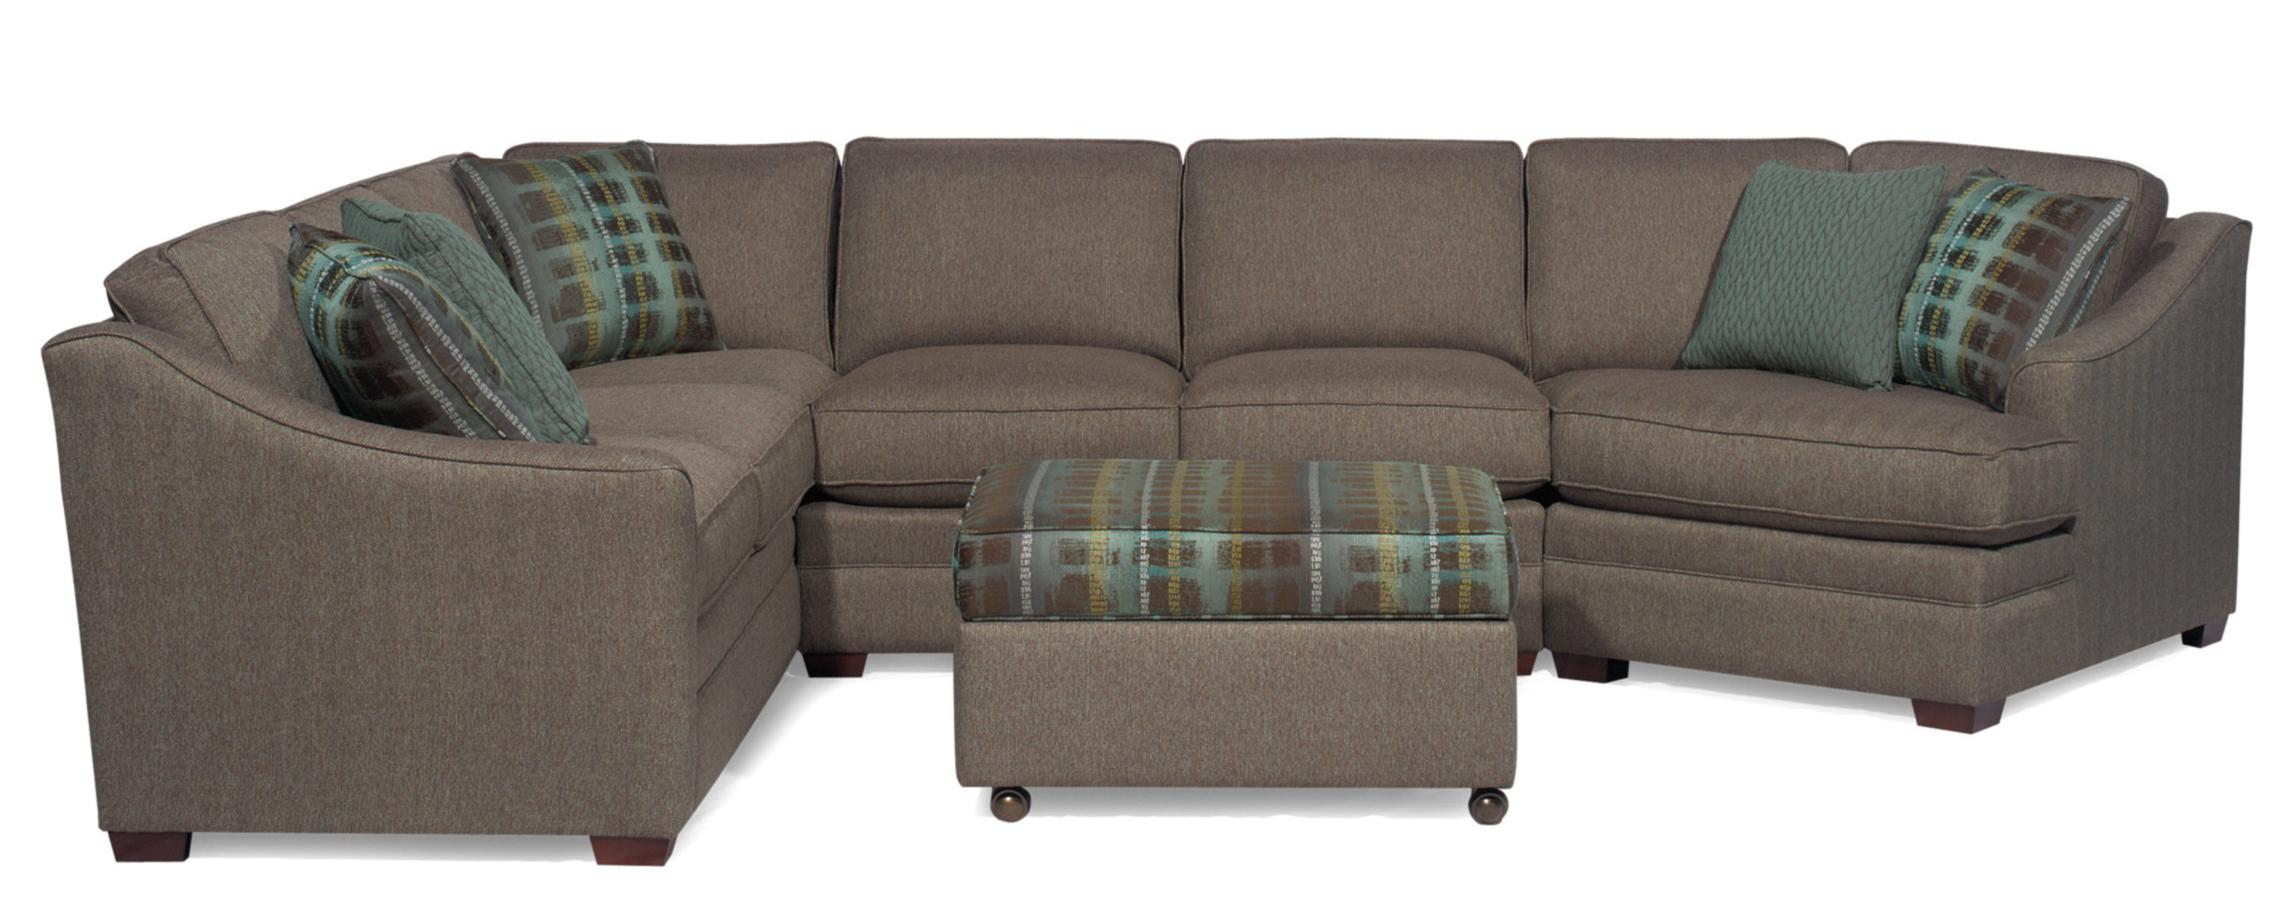 Customizable 3 Piece Sectional With Laf Cuddler By